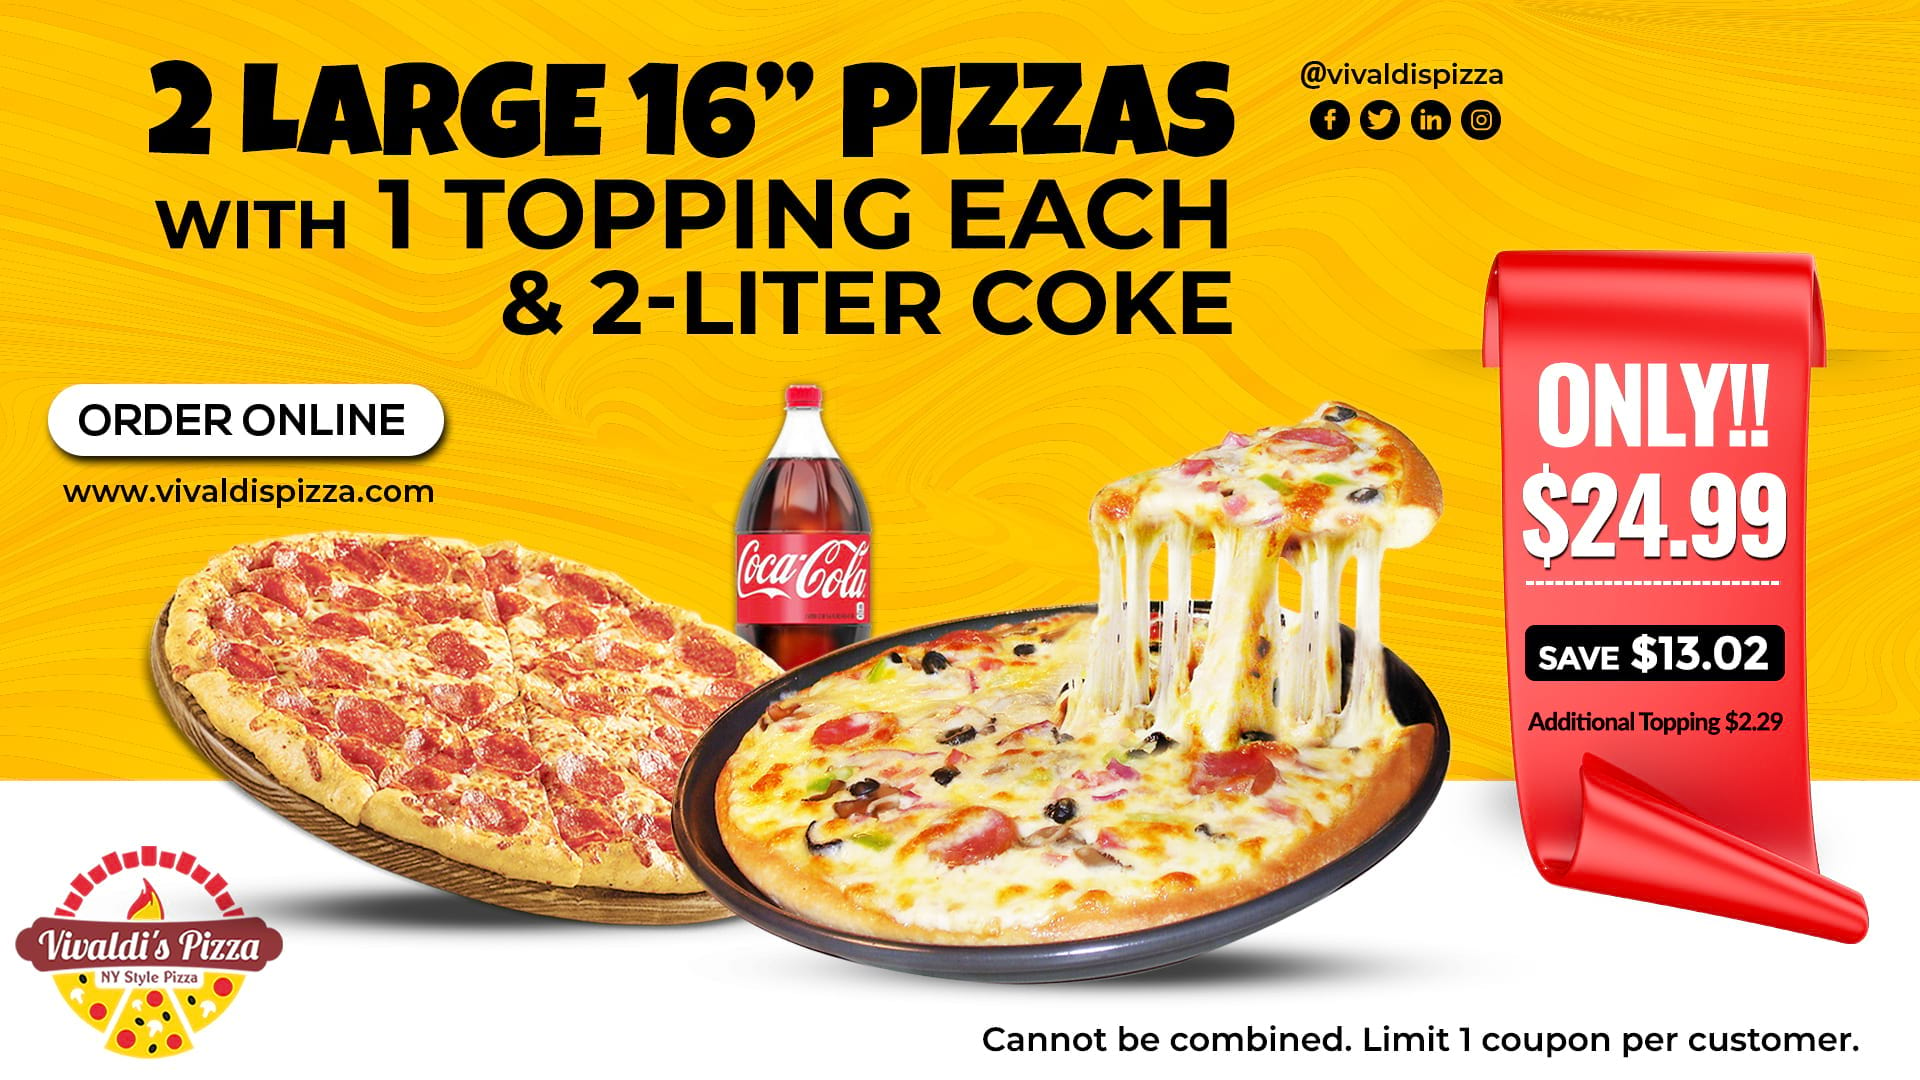 vivaldis-pizza-newington-coupons-restaurant-offers